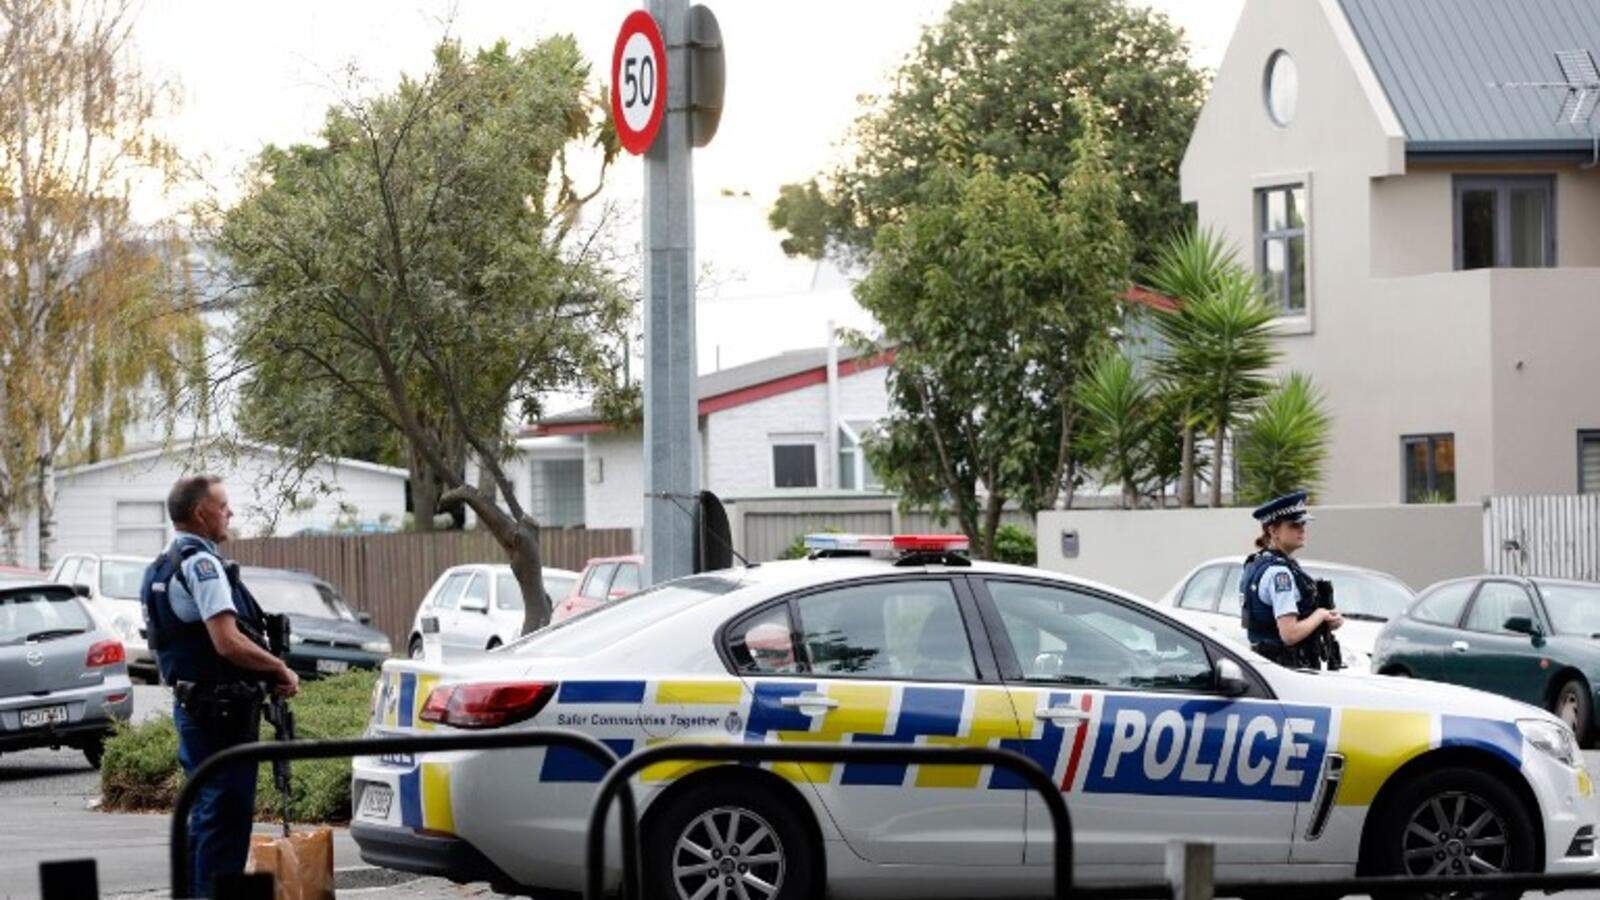 Attacks on two Christchurch mosques left at least 49 dead on March 15, with one gunman -- identified as an Australian extremist -- apparently livestreaming the assault that triggered the lockdown of the New Zealand city.